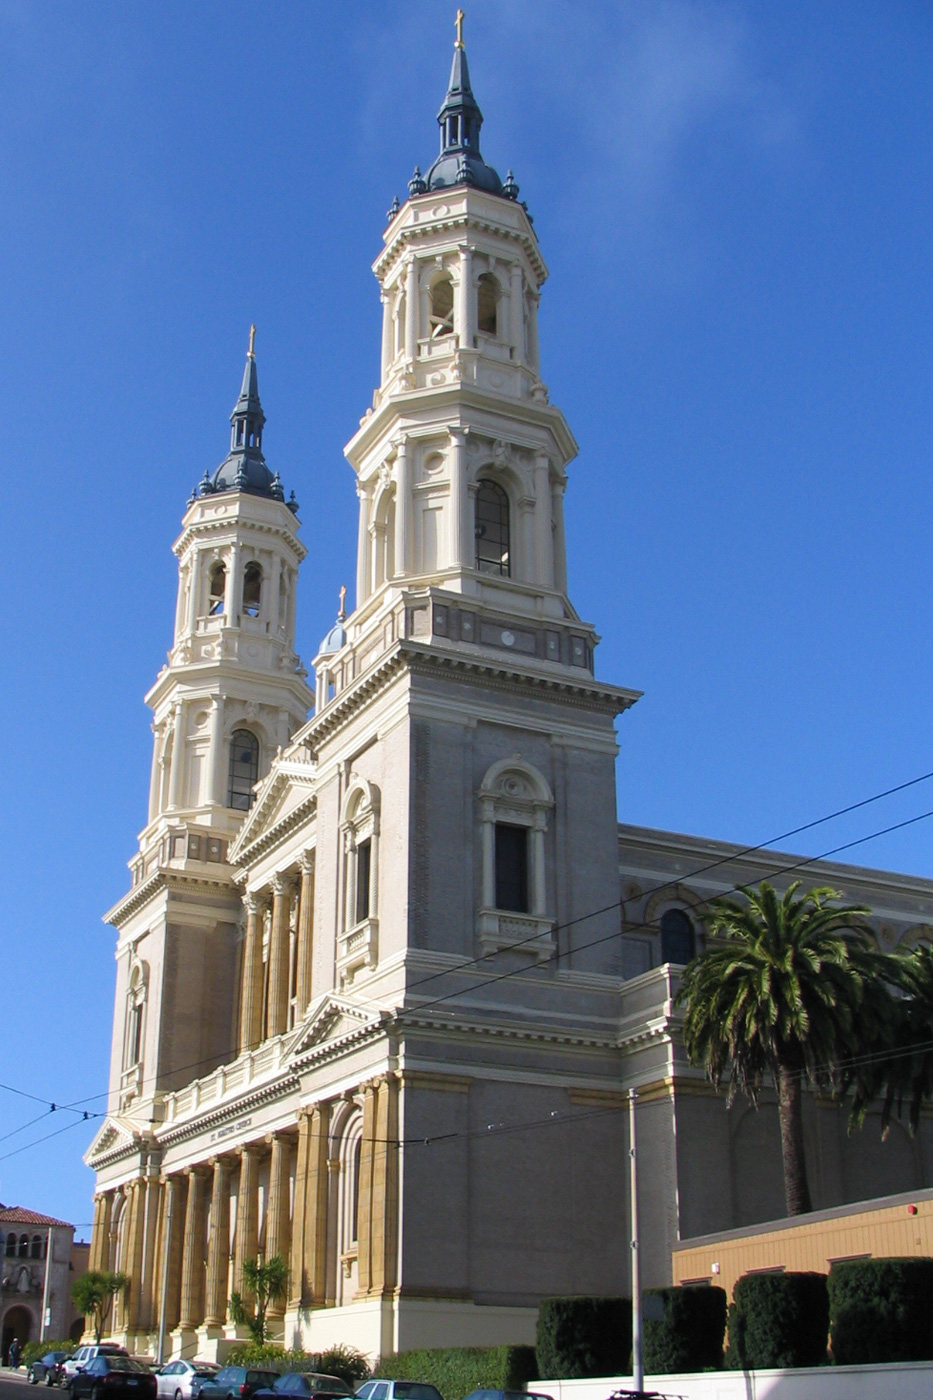 Saint Ignatius Church (San Francisco) - Wikipedia